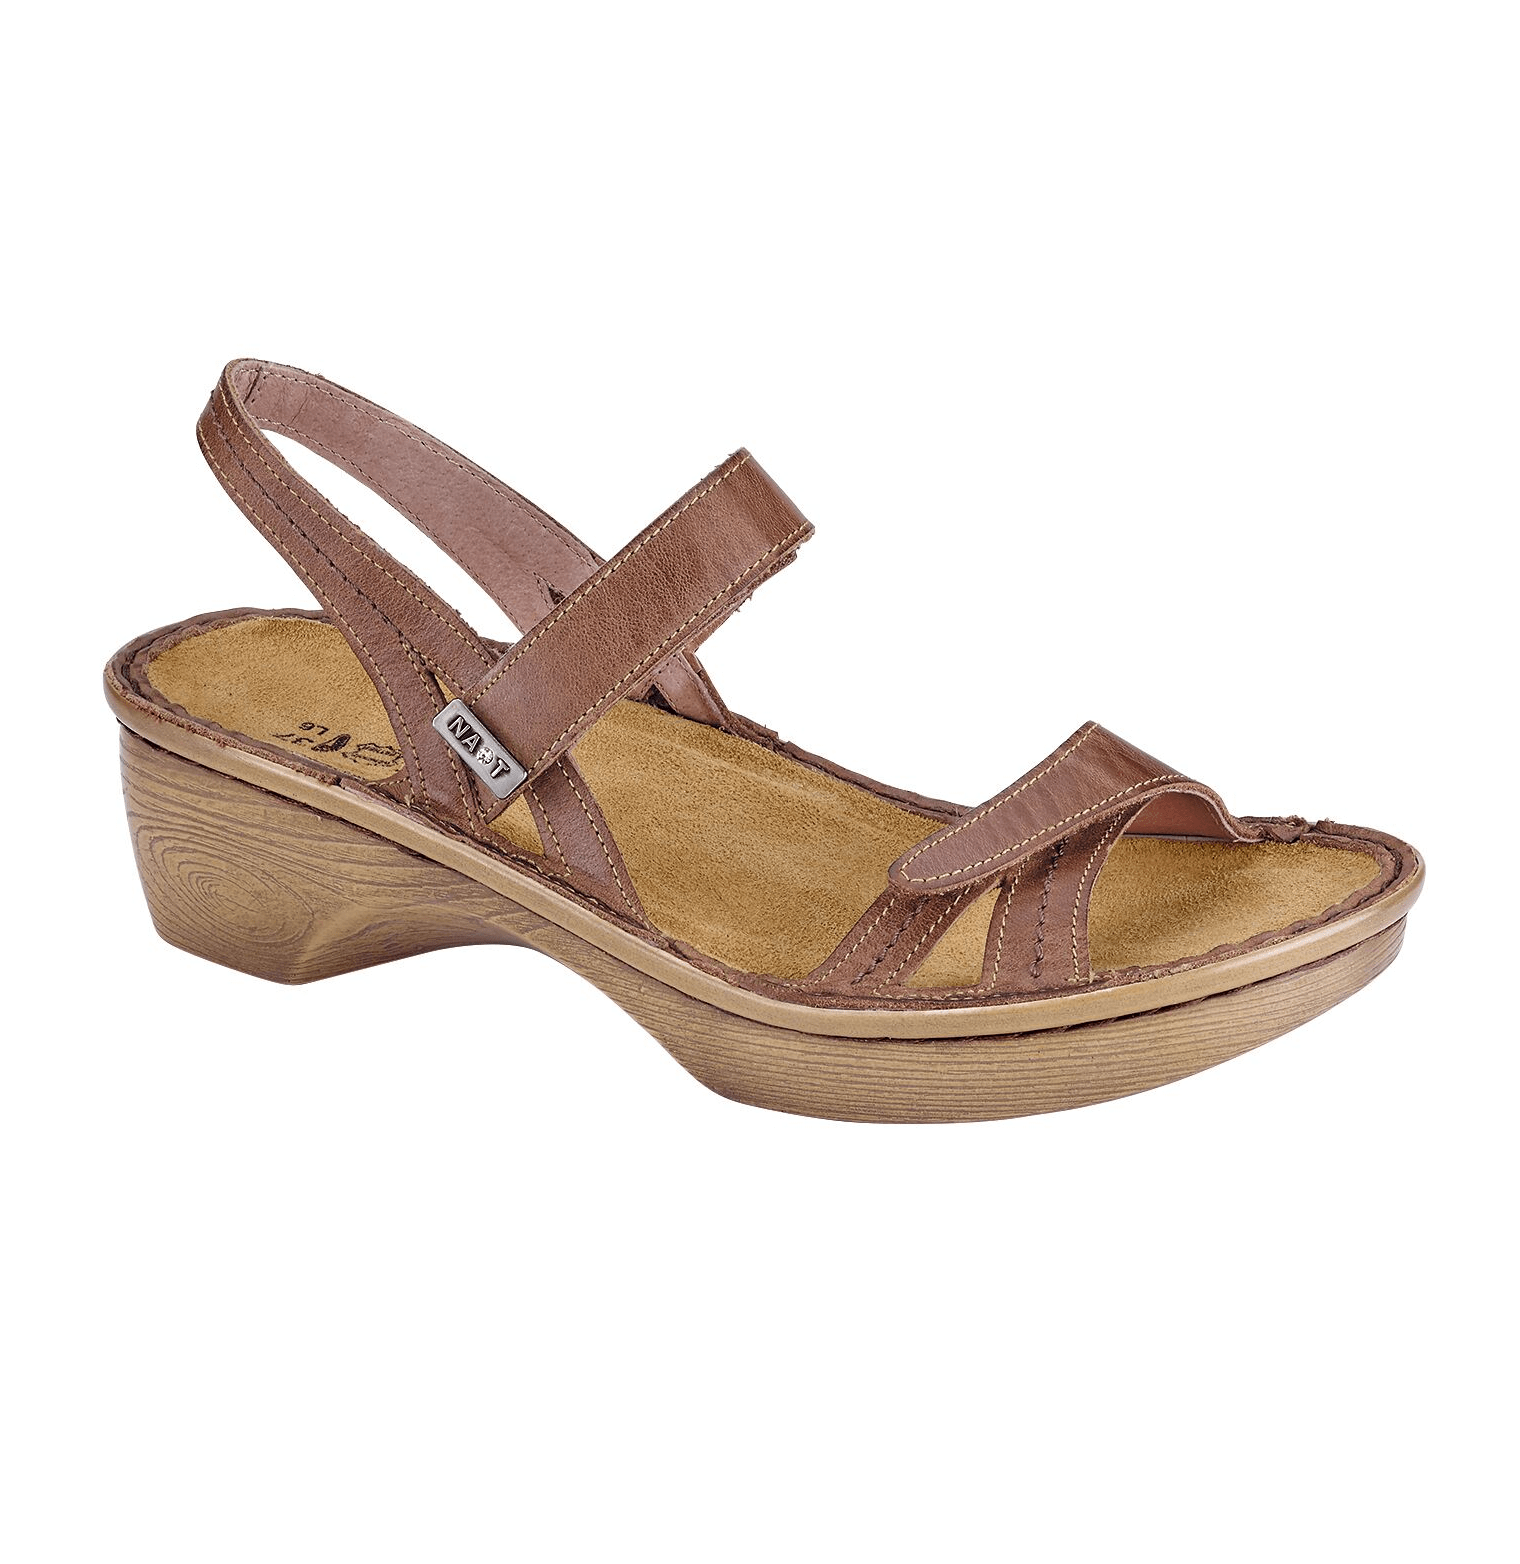 Alfalfa Plant 2019 Ballet Cut Out Women Leather Shoes Woman Flat Flexible Round Toe Fashion Loafer,Gold,5.5